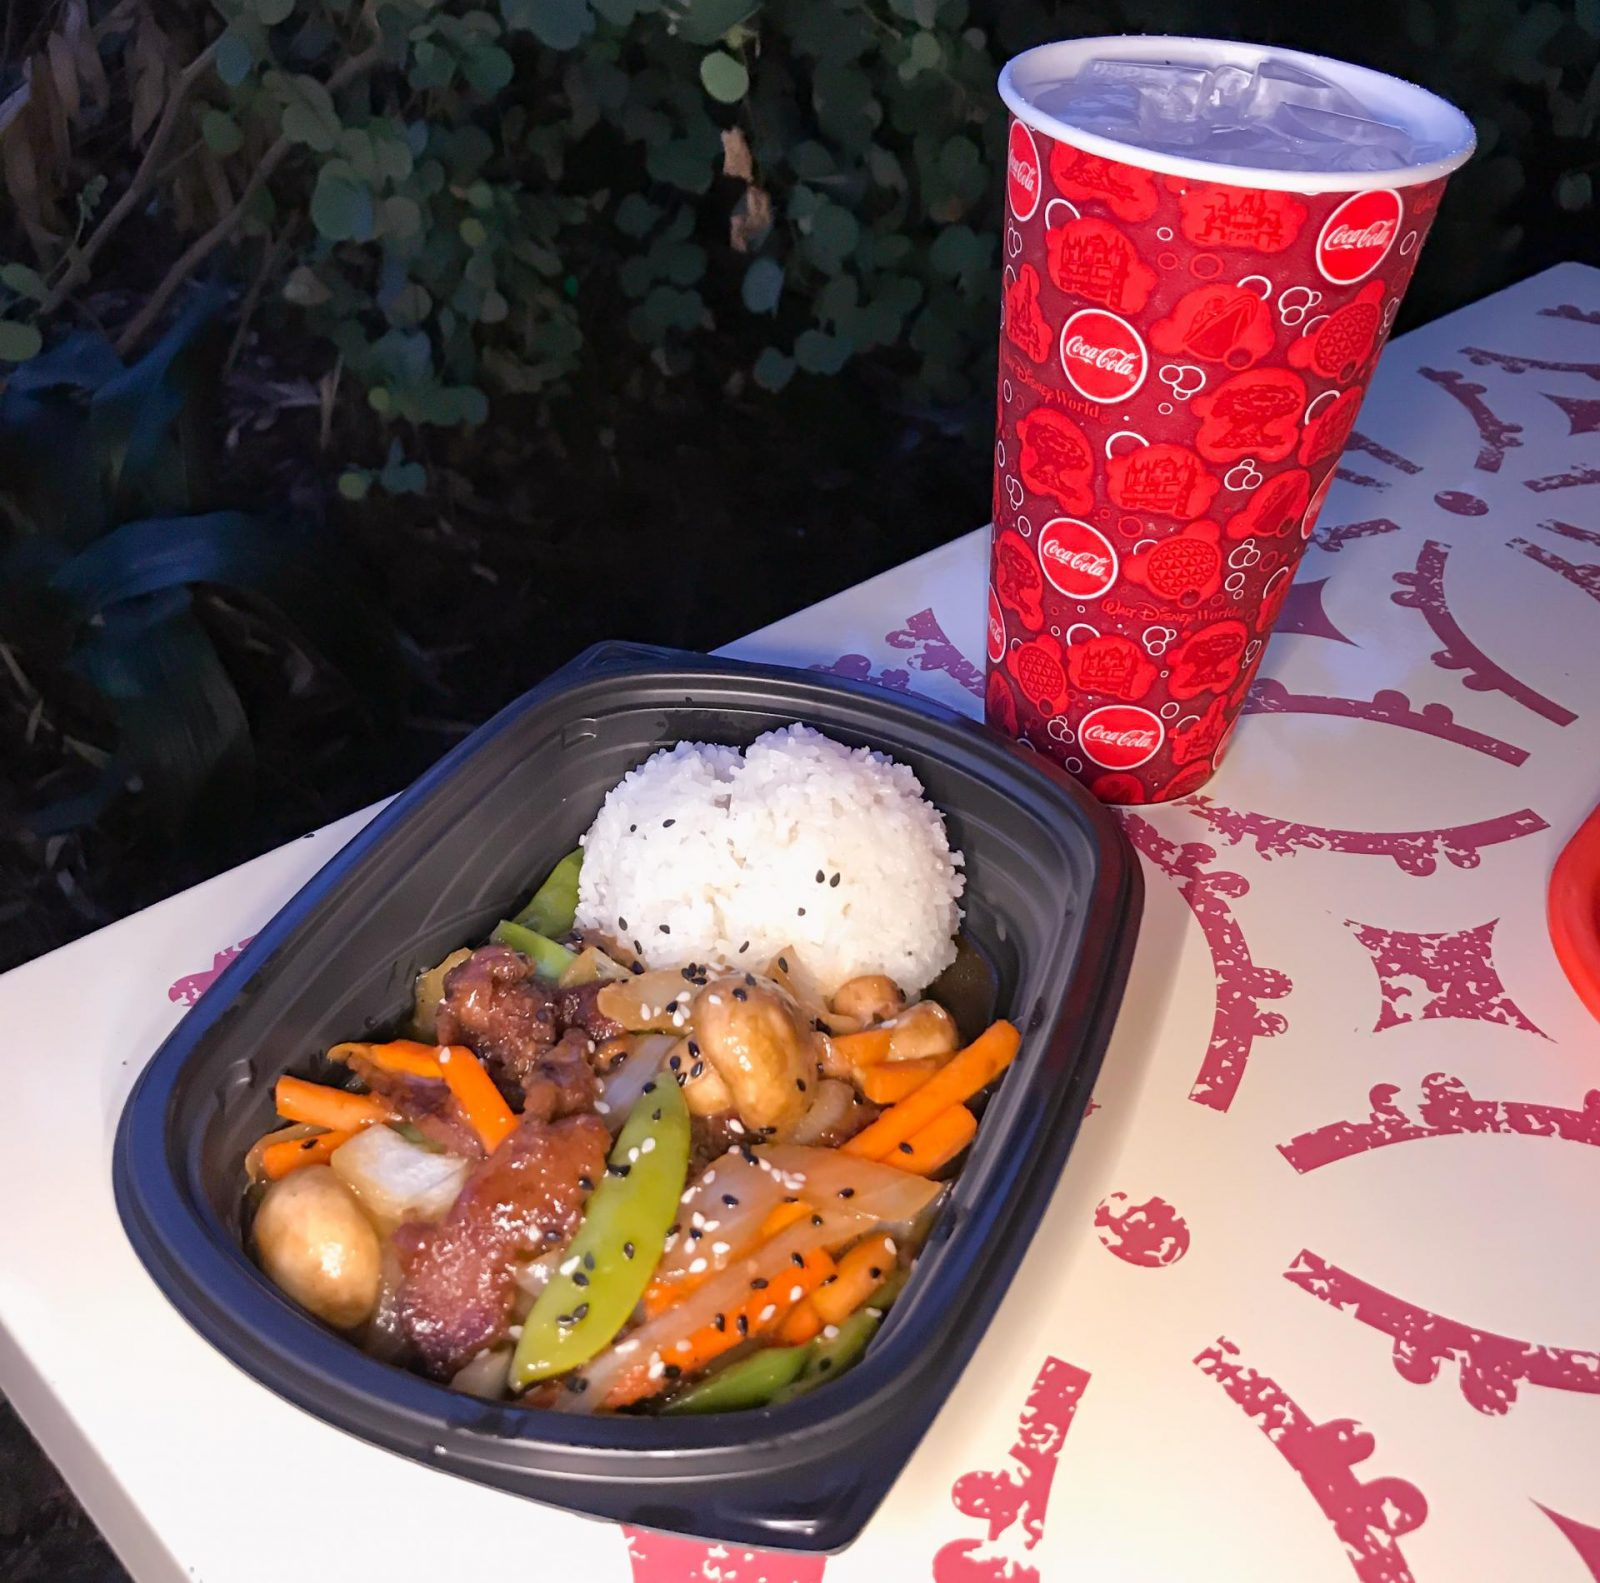 Yak and Yeti Local Food Cafes - Quick Service Restaurants at Disney World